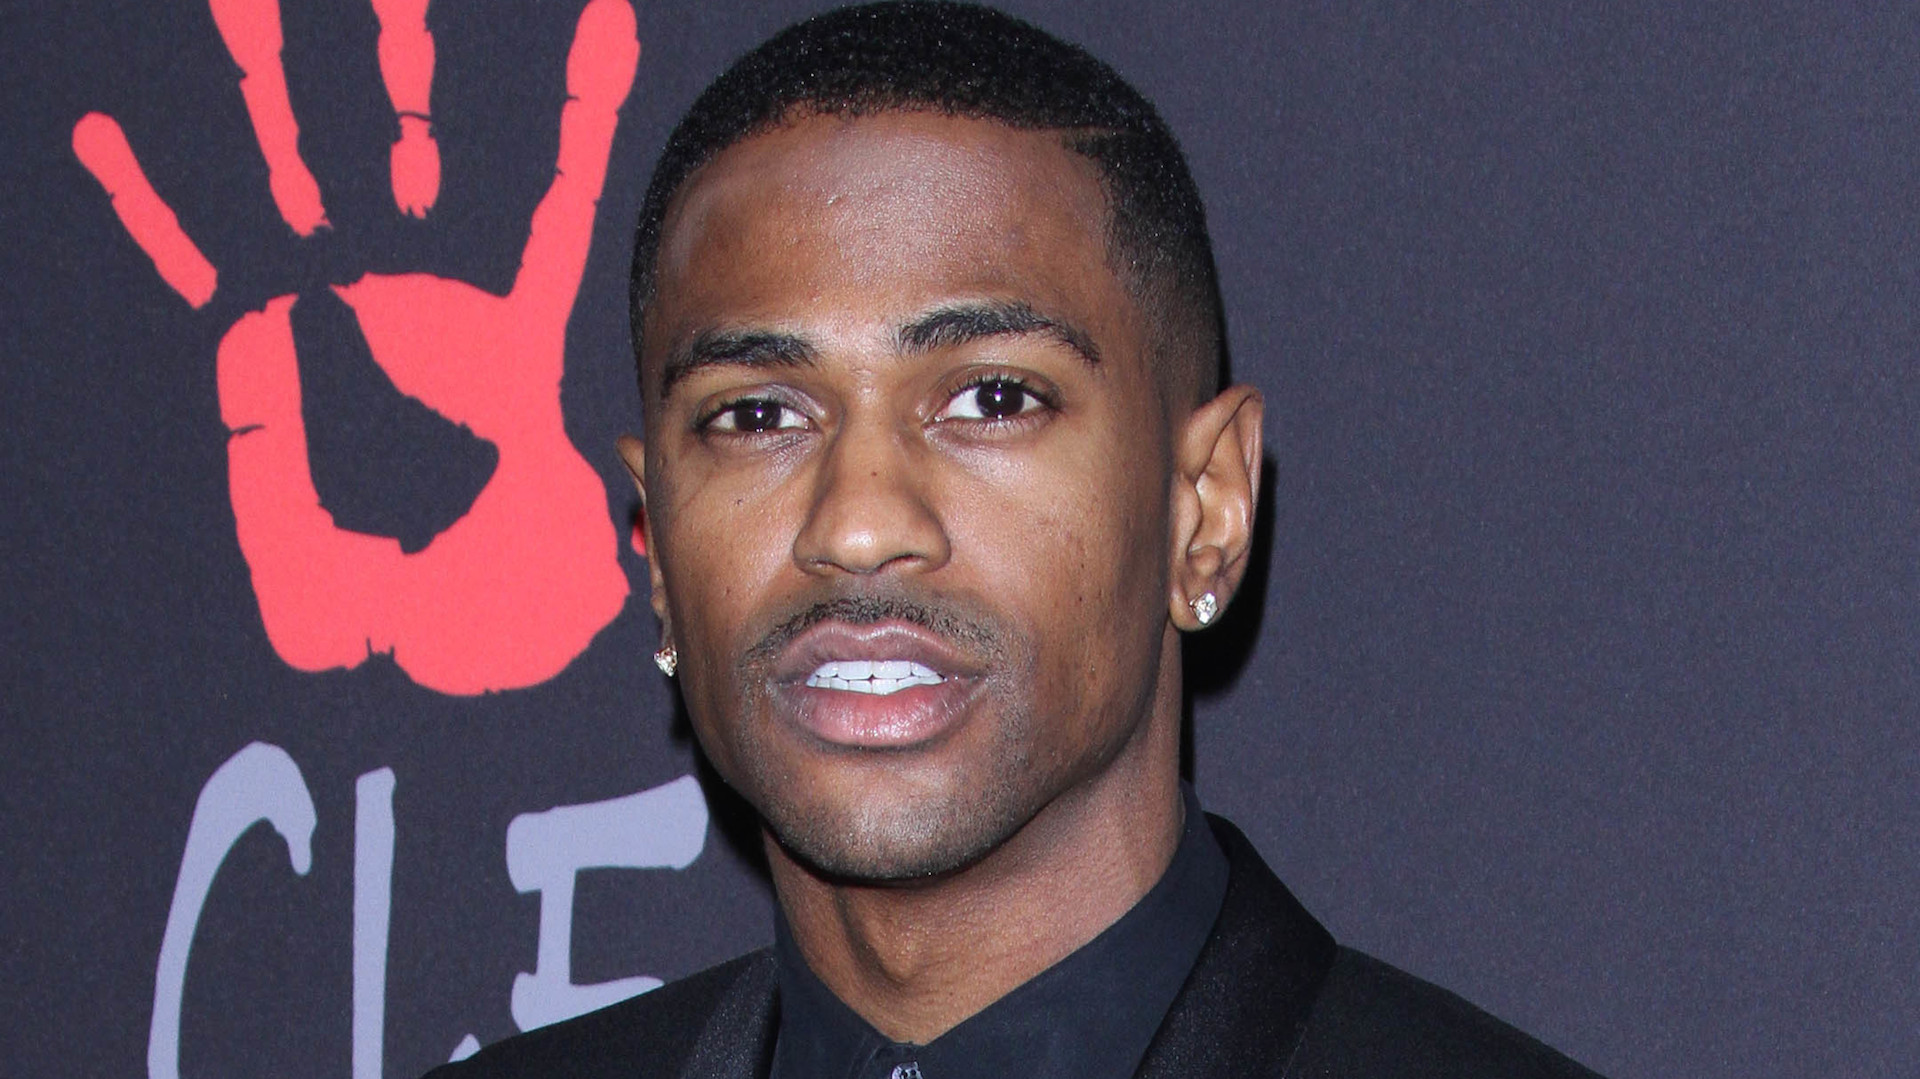 big sean haircut fade - photo #23